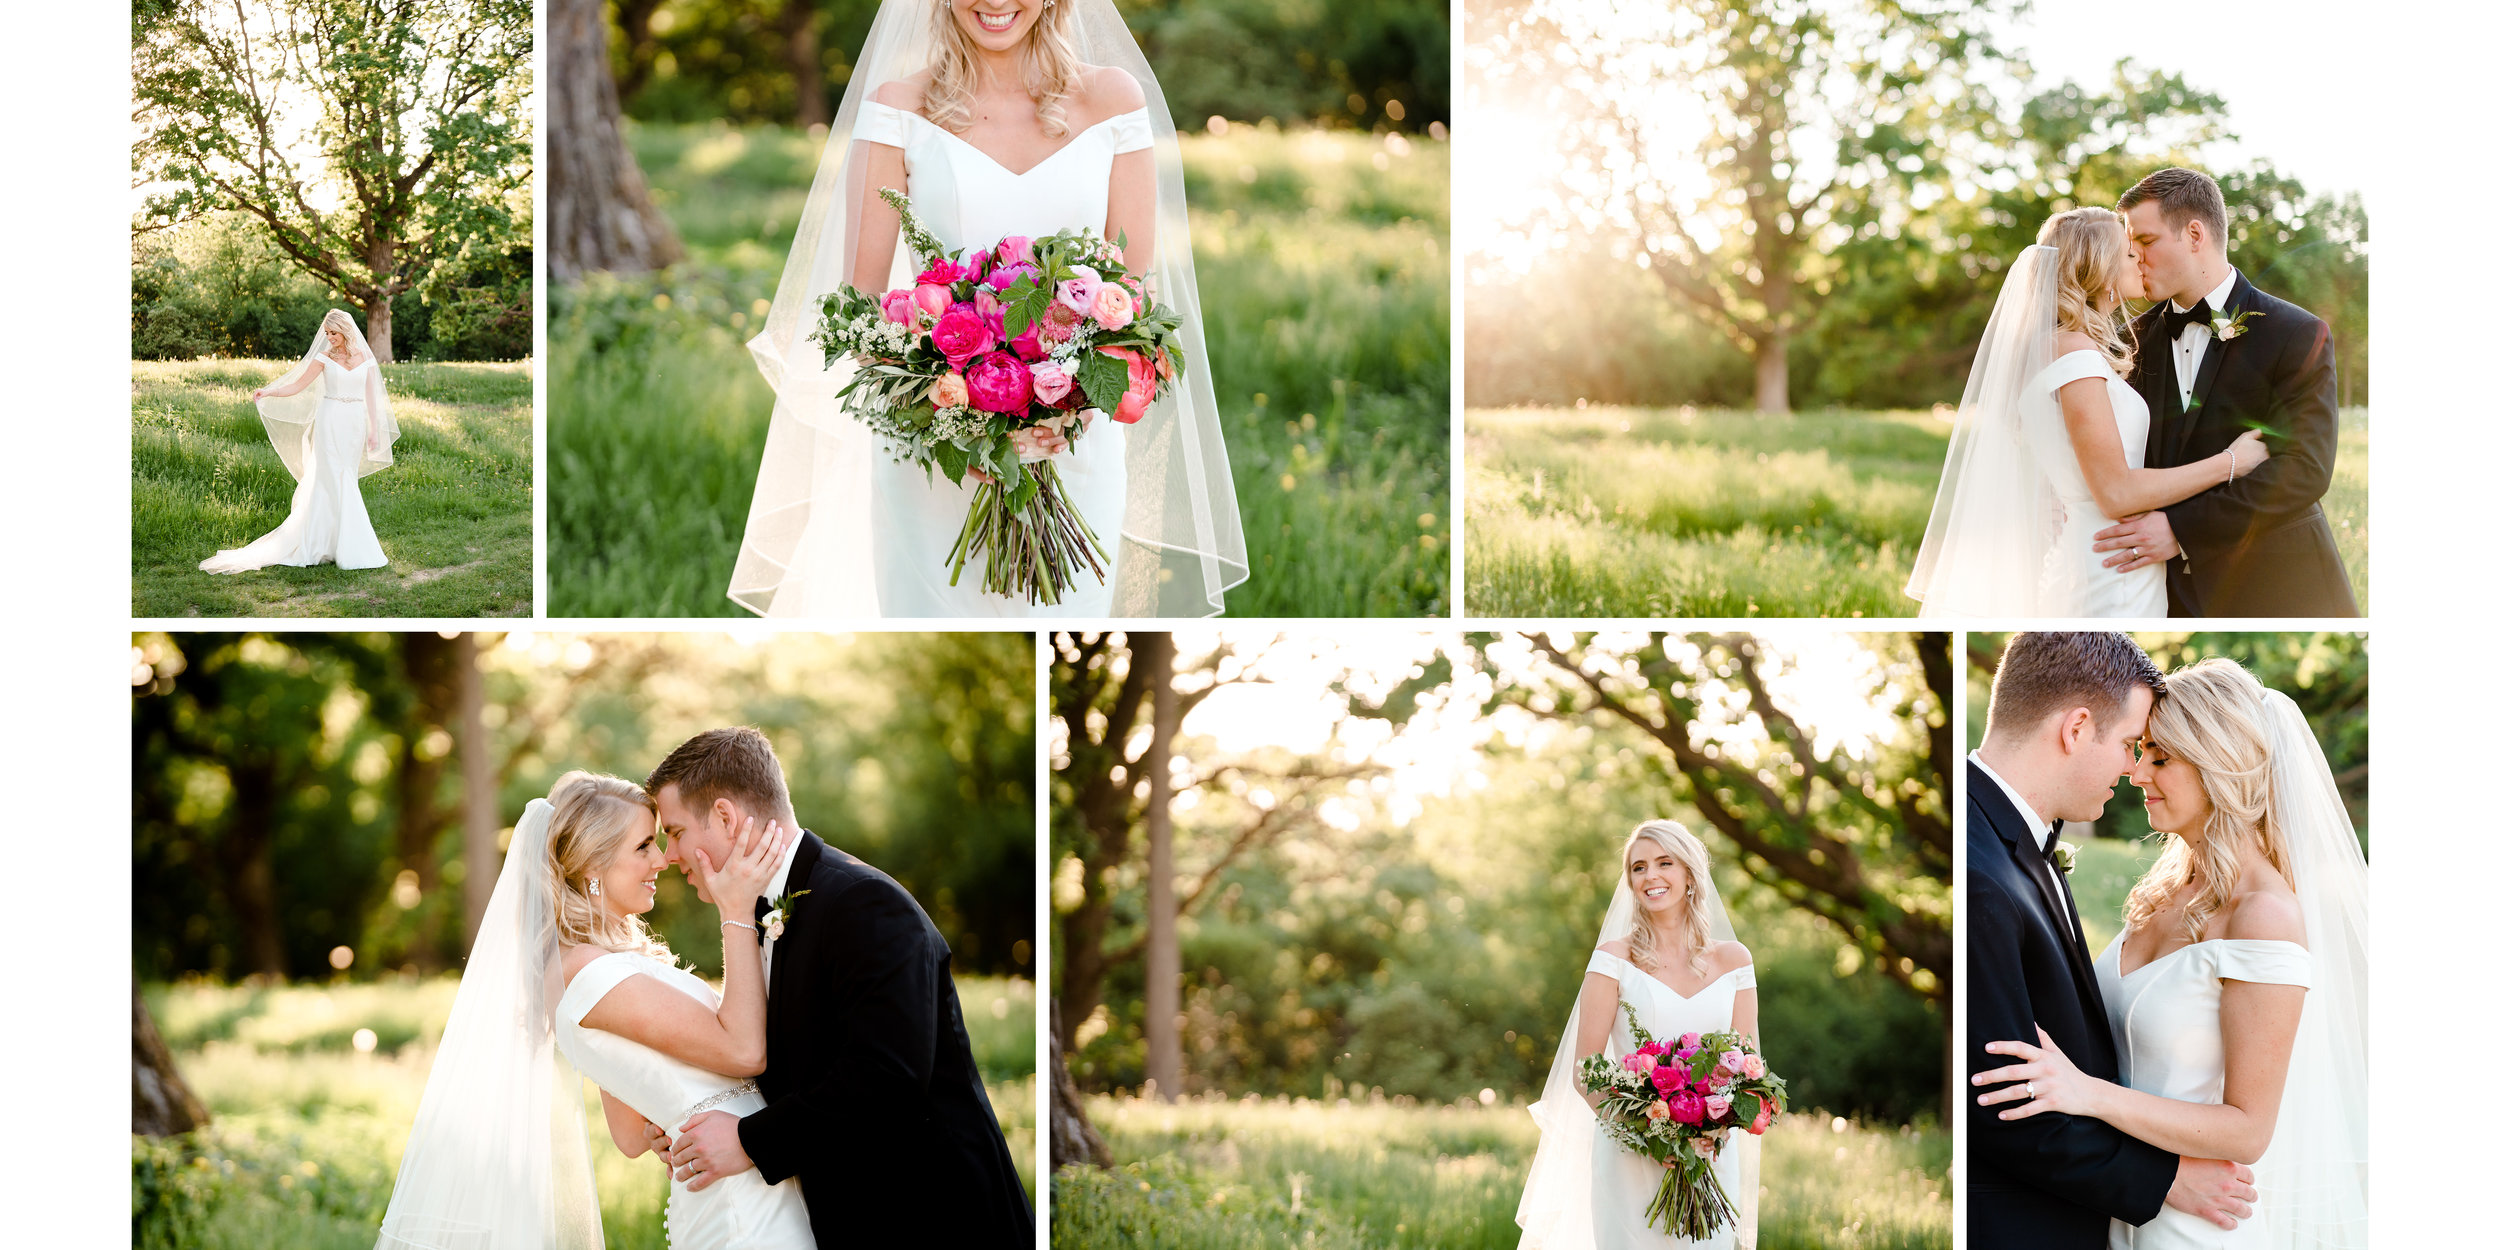 Amanda + Justin - Wedding Album_28.jpg